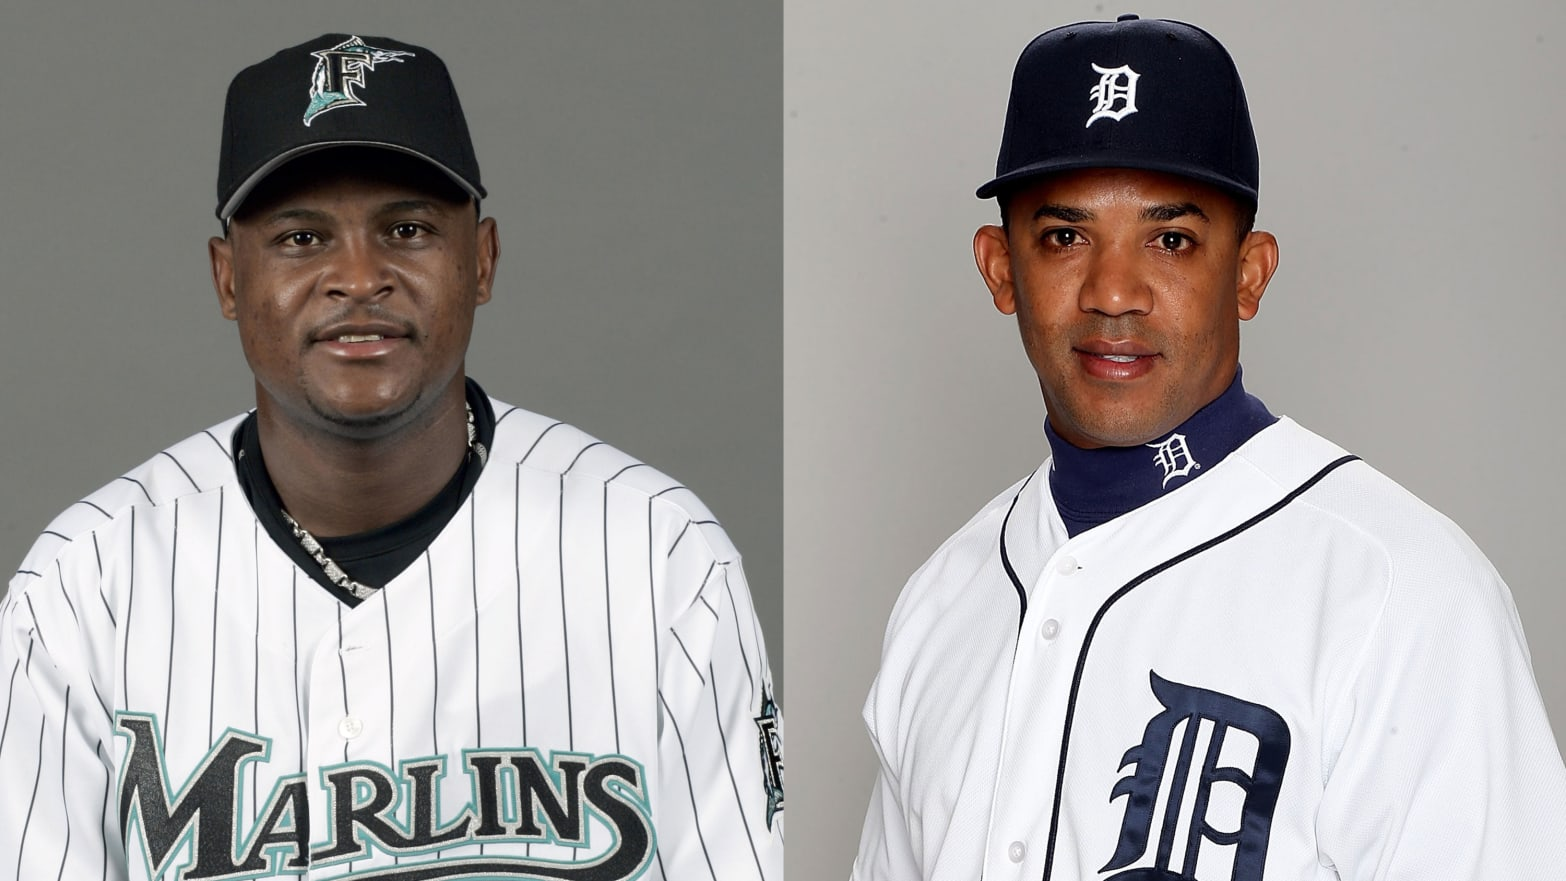 Ex-MLB Stars Luis Castillo and Octavio Dotel Arrested in Dominican Republic for Alleged Drug Money Laundering